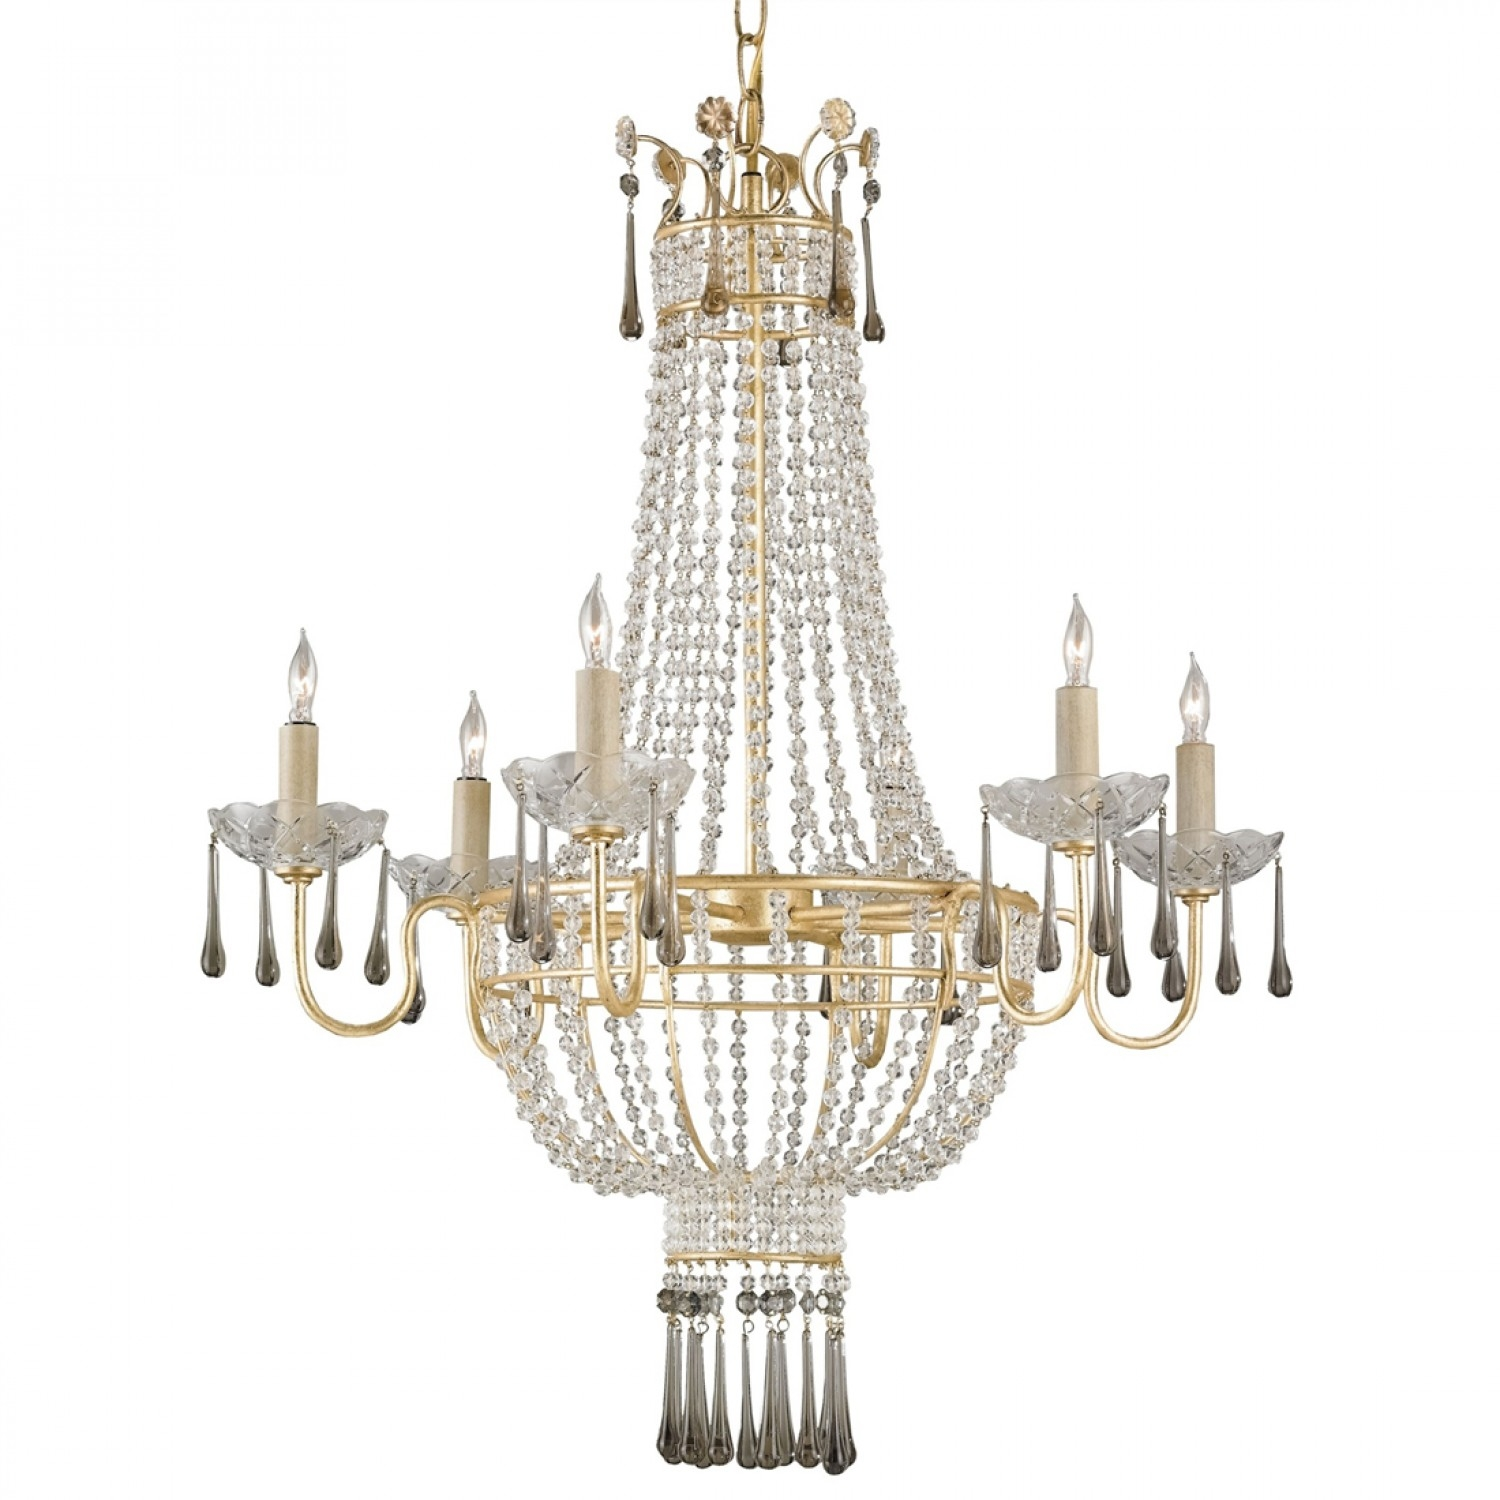 Brilliant Bulbs Cool Chandeliers With Brushed Bronze Hanger As For Vintage Style Chandeliers (Image 3 of 15)